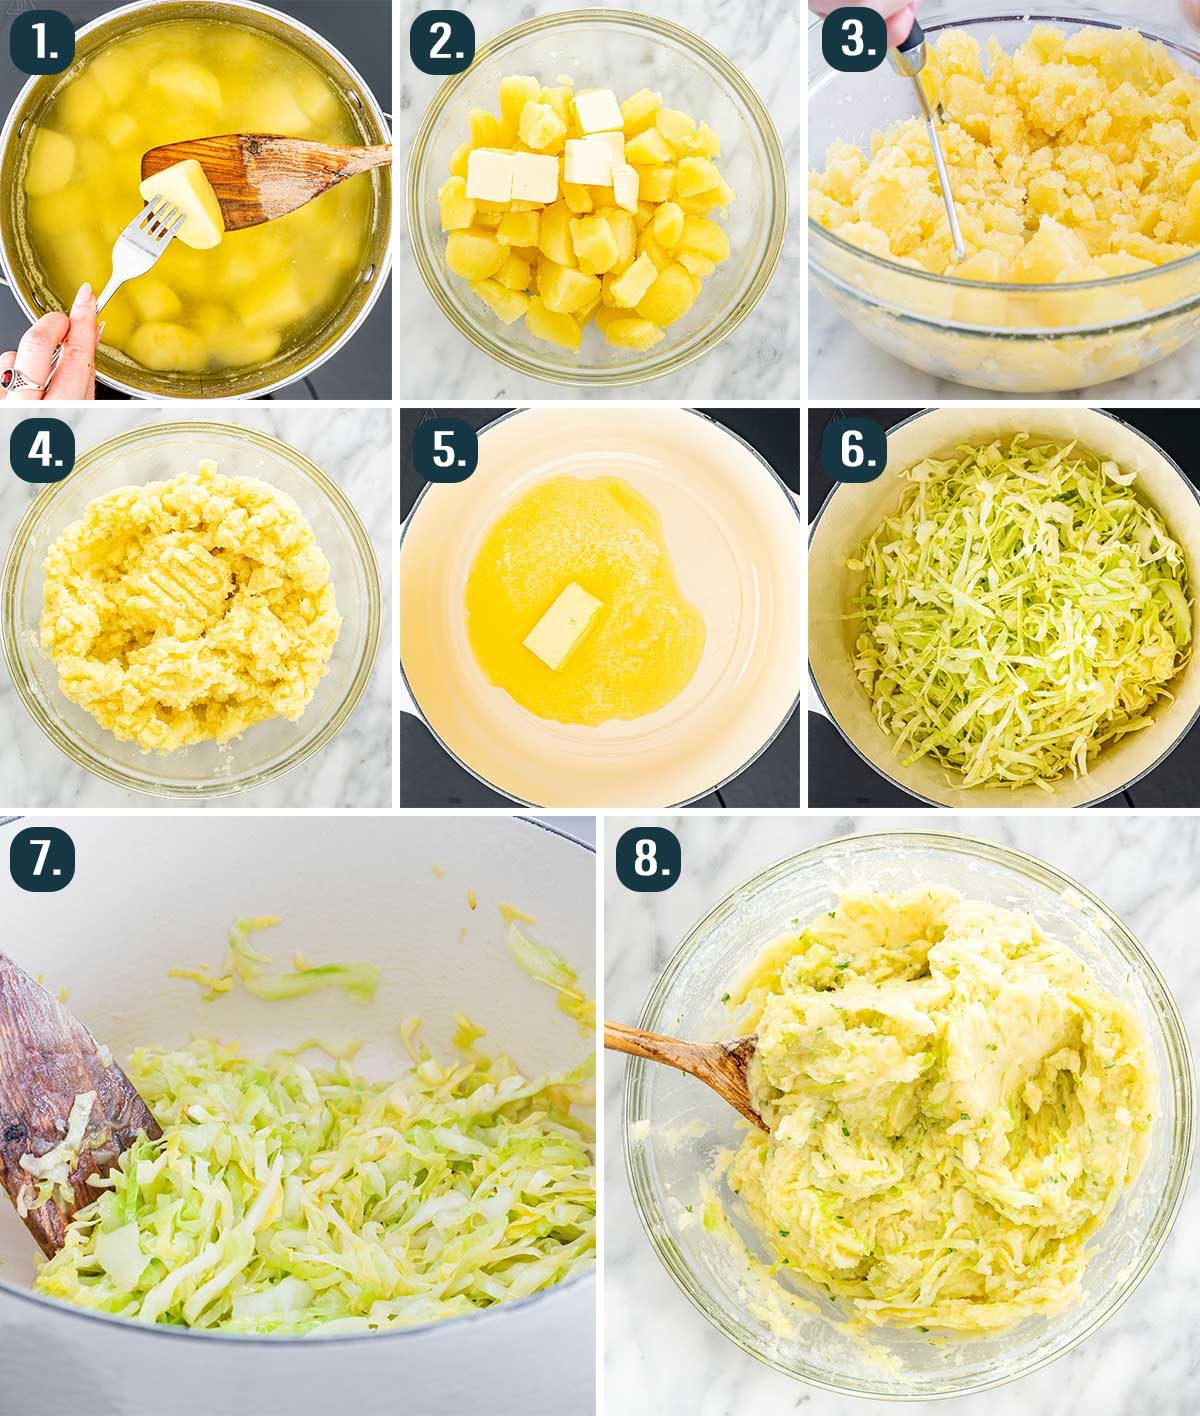 process shots showing how to make colcannon